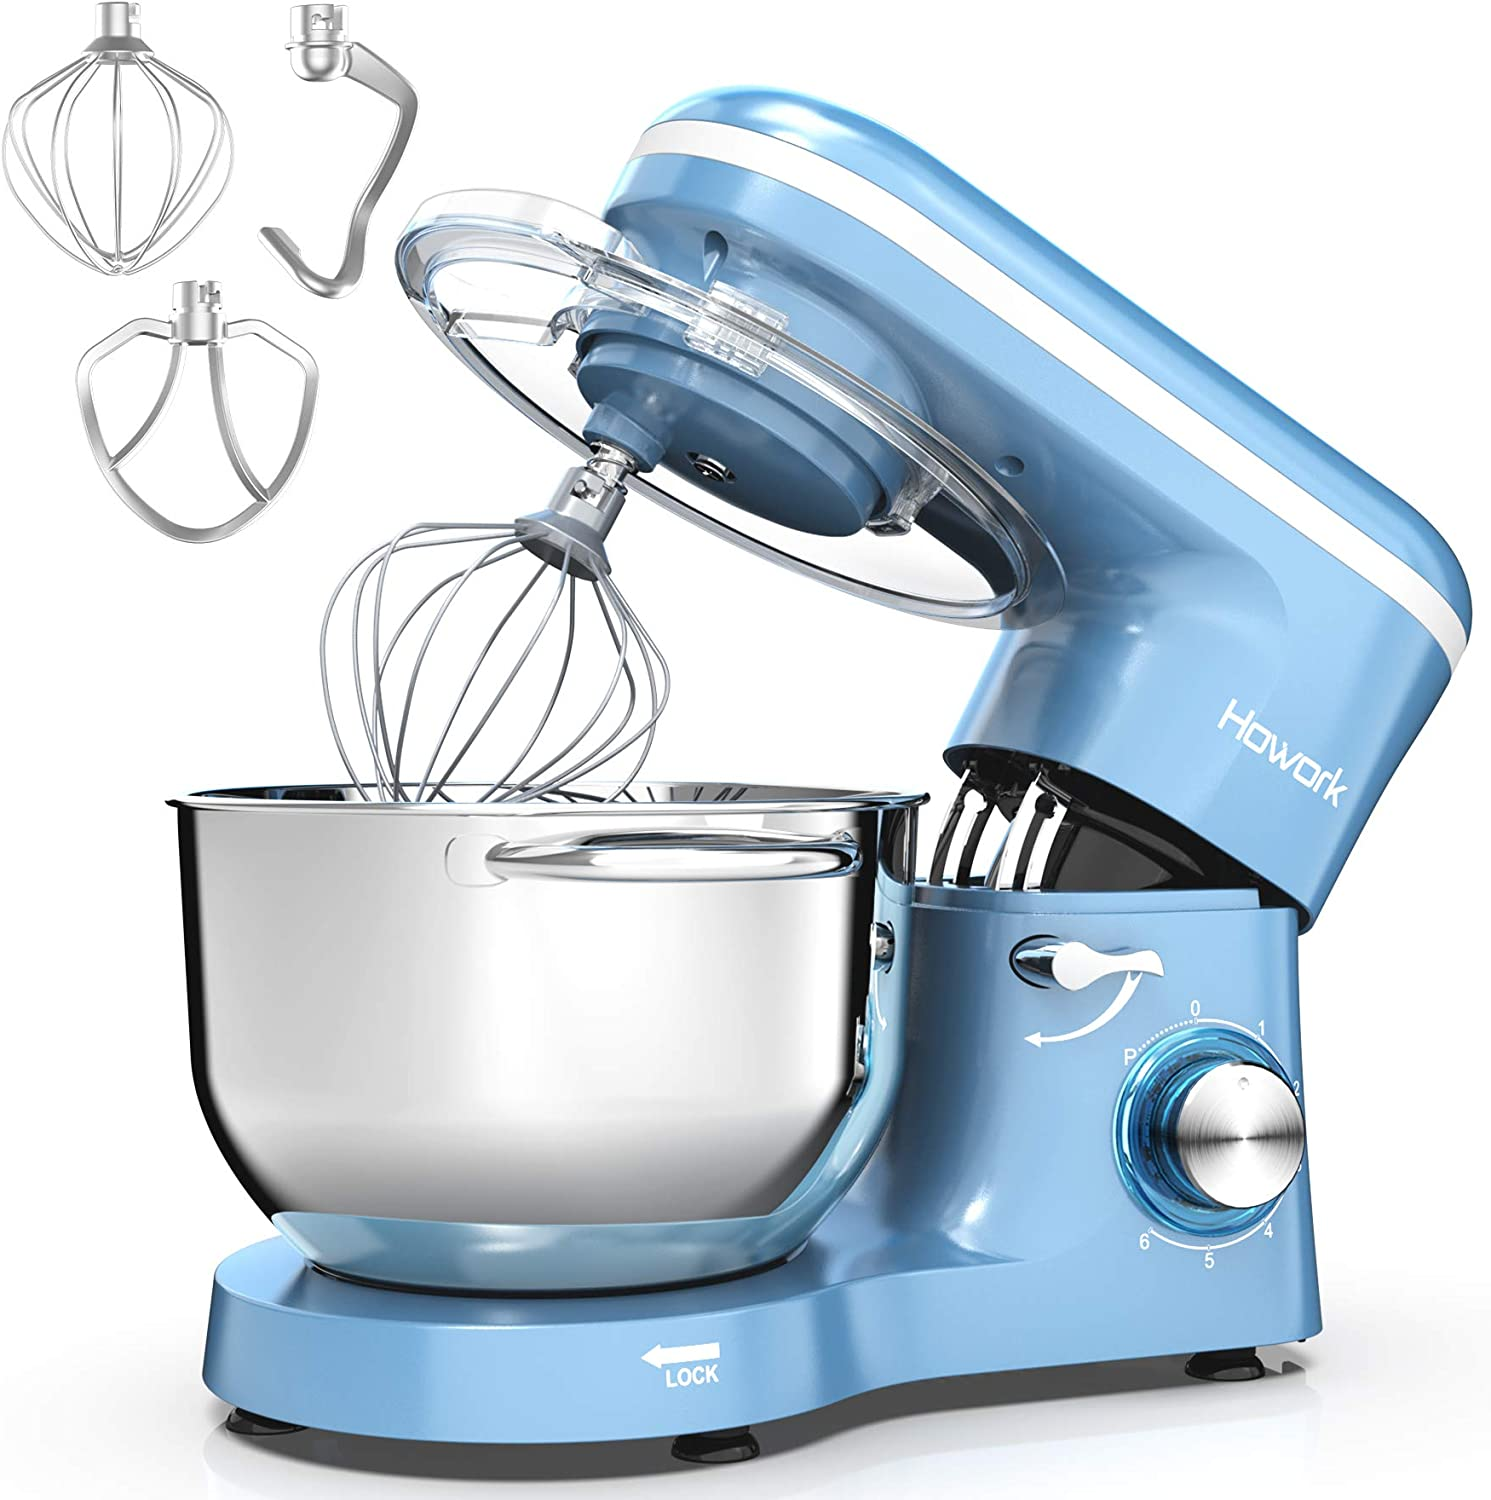 HOWORK Stand Mixer, 660W Electric Kitchen Food Mixer With 6.55 Quart Stainless Steel Bowl, 6-Speed Control Dough Mixer With Dough Hook, Whisk, Beater (6.55 QT, Blue)